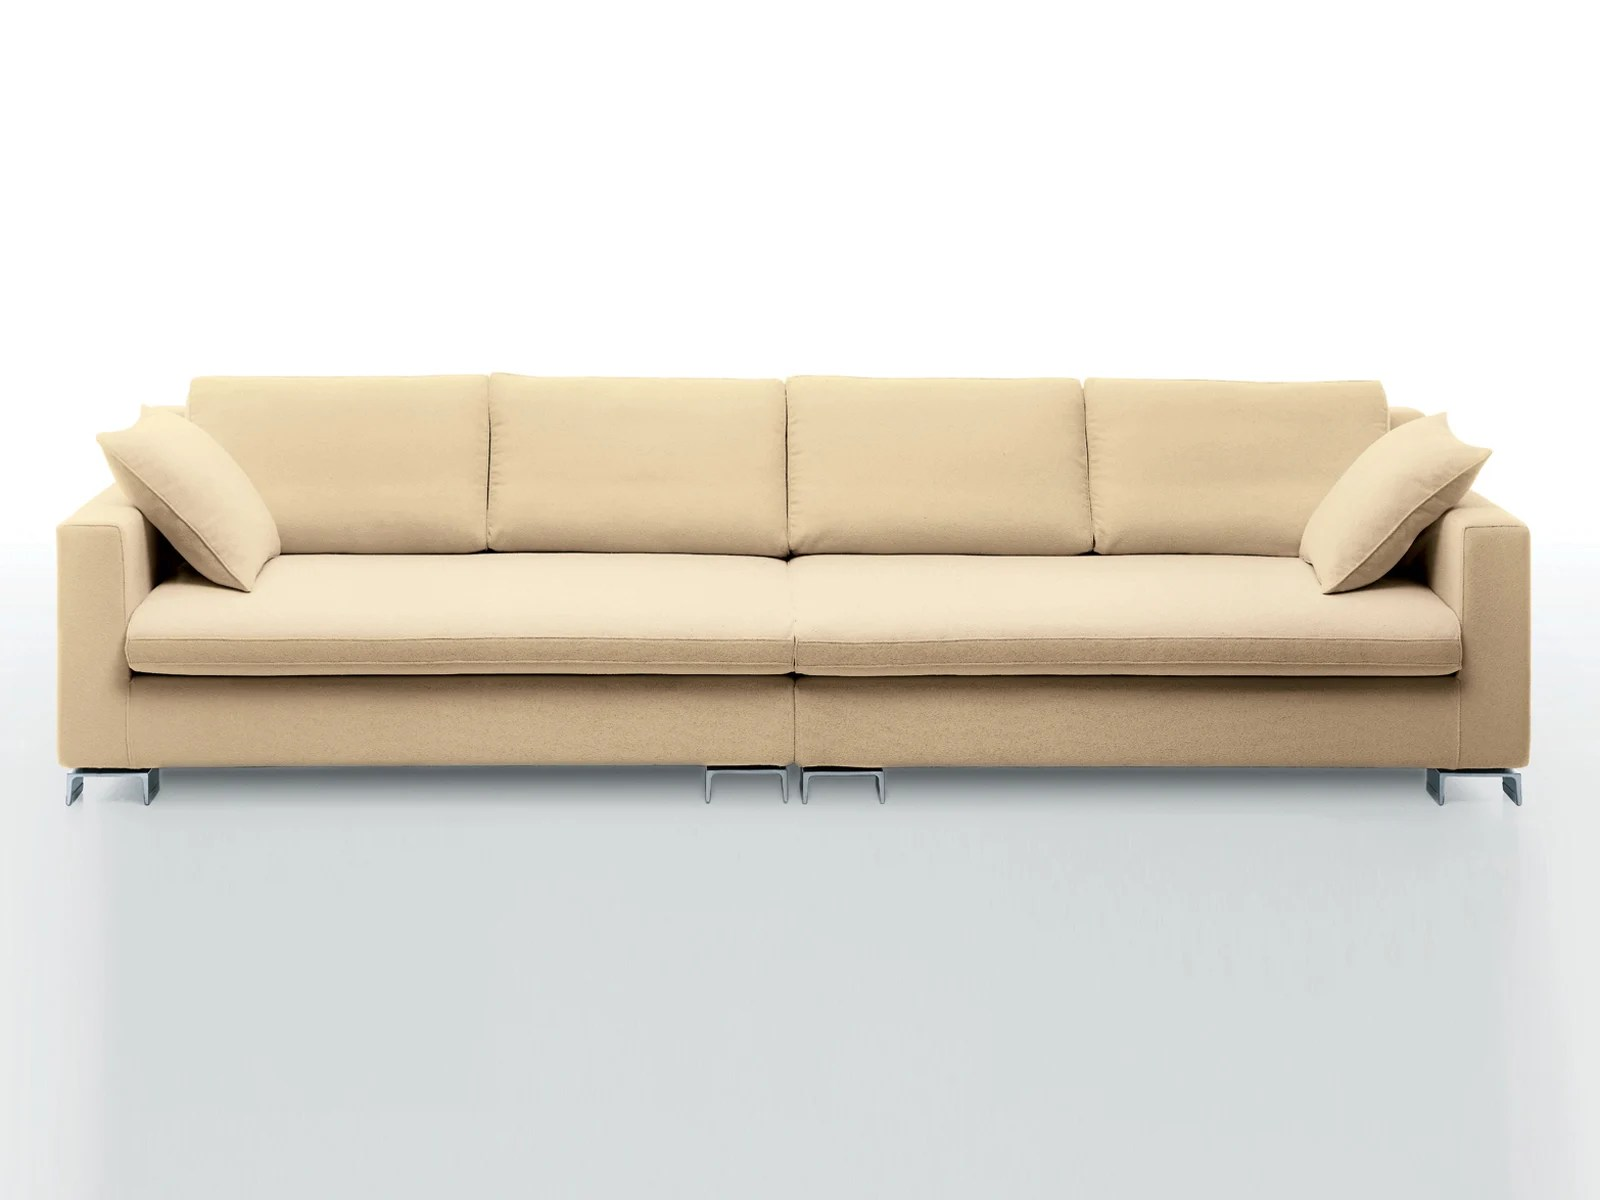 Sofas Products I 4 Mariani Archiproducts